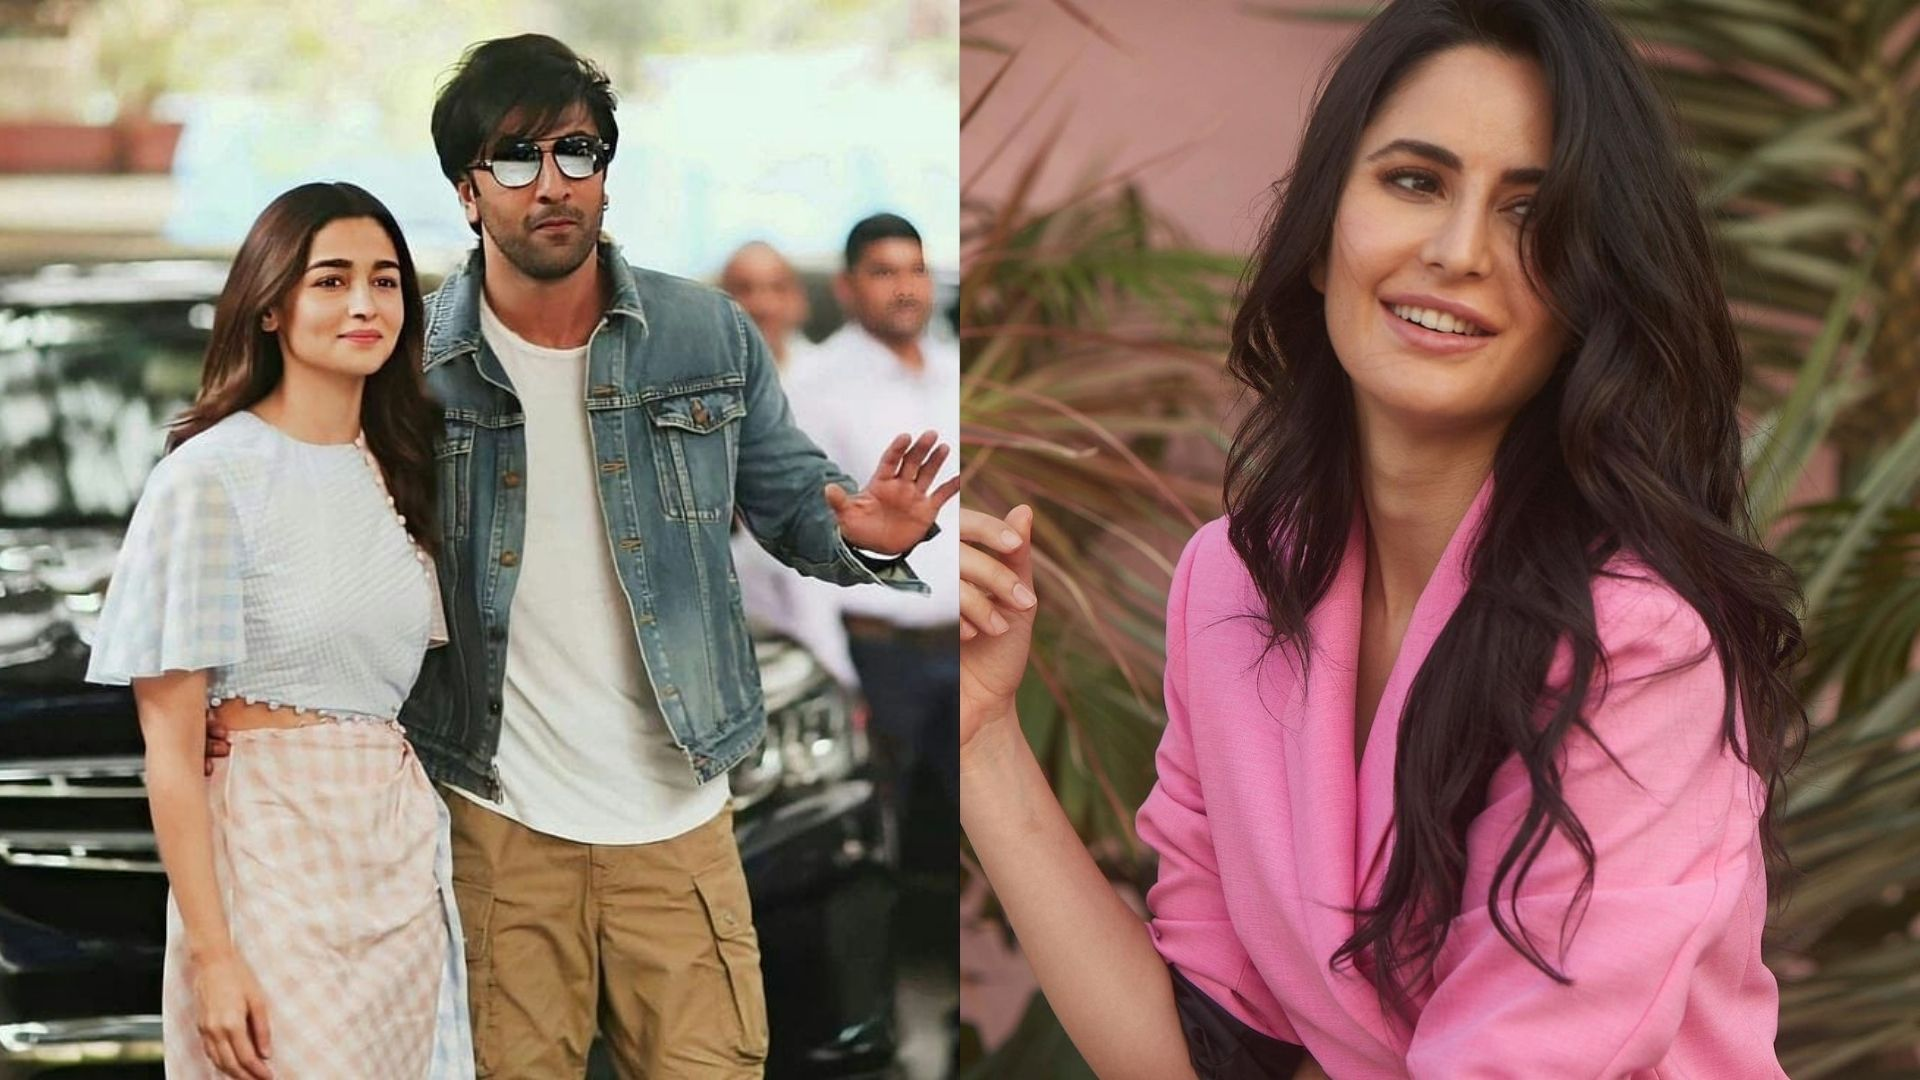 Did You Know Alia Bhatt Had A Crush On Ranbir Kapoor, And Guess How Katrina Kaif Reacted When She Got To Know?